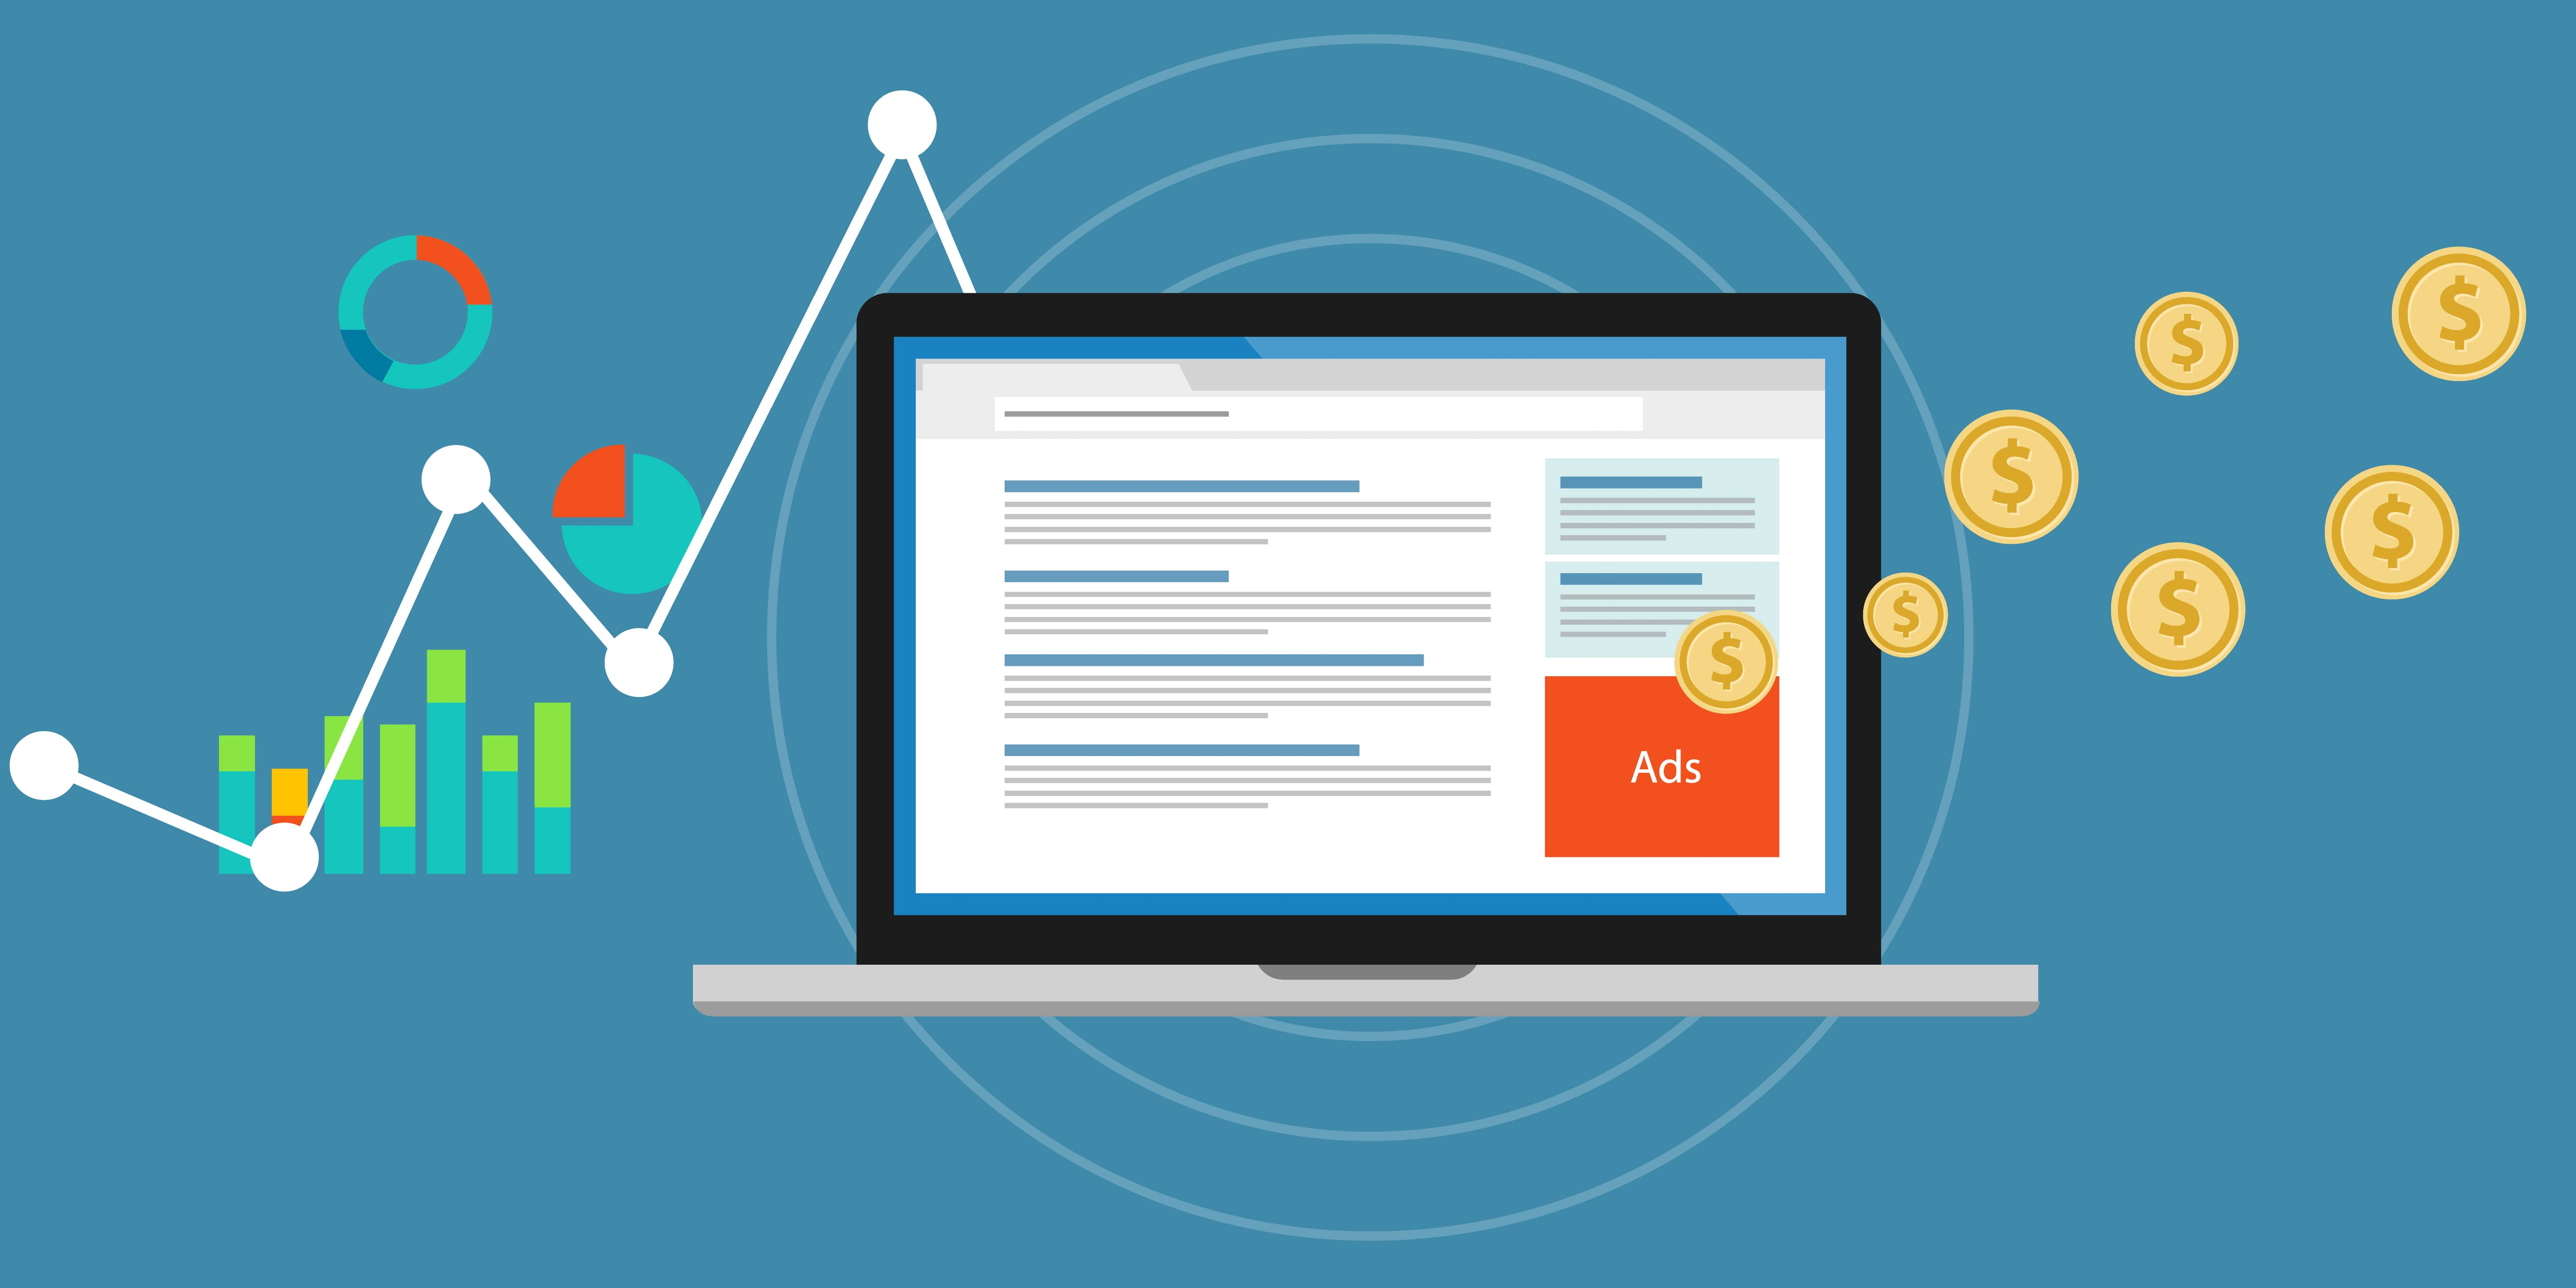 5 Reasons To Use Adwords As A Marketing Tool